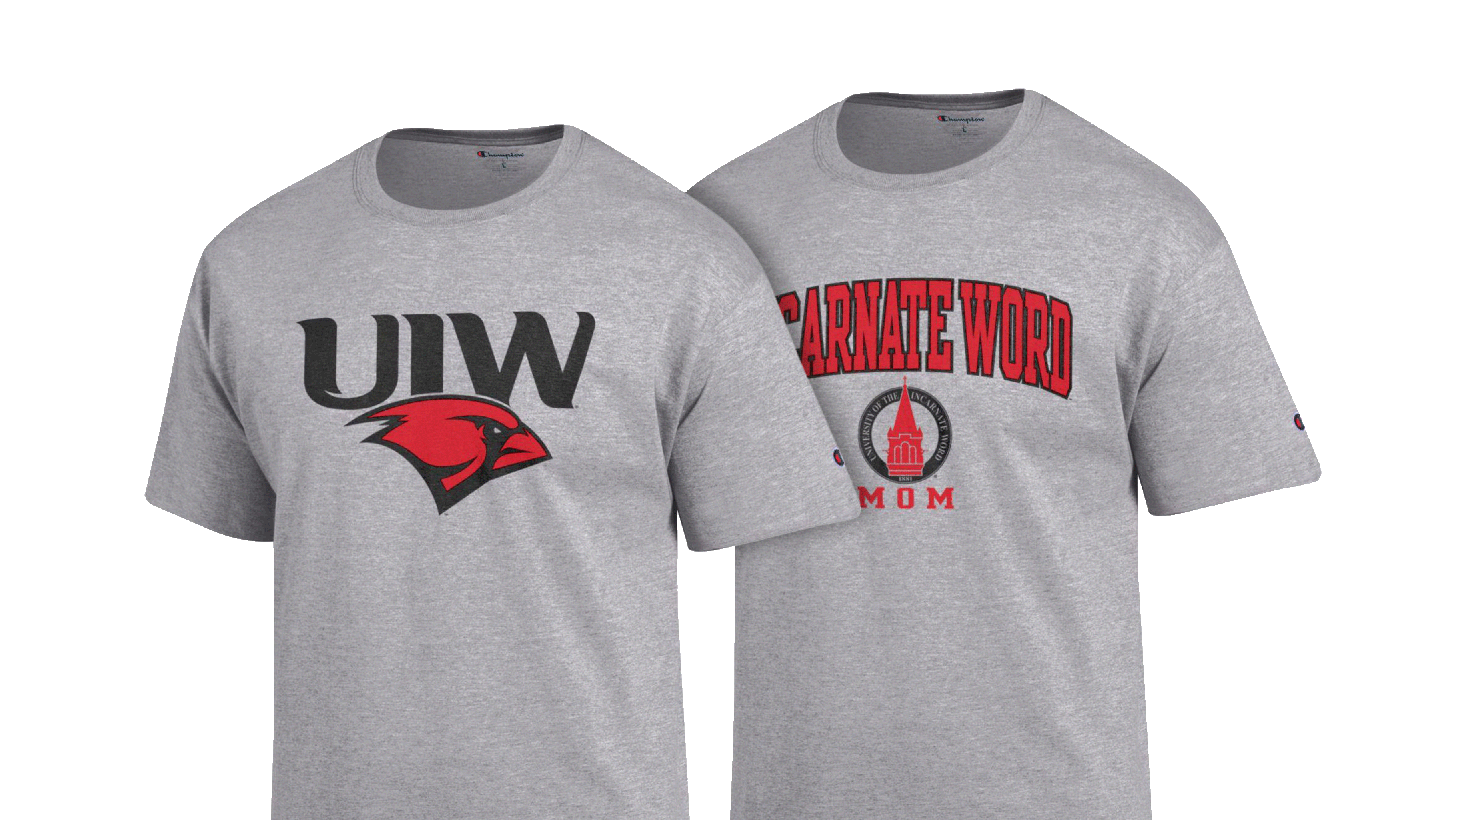 5041ebbff2f96 UIW Bookstore Apparel, Merchandise, & Gifts